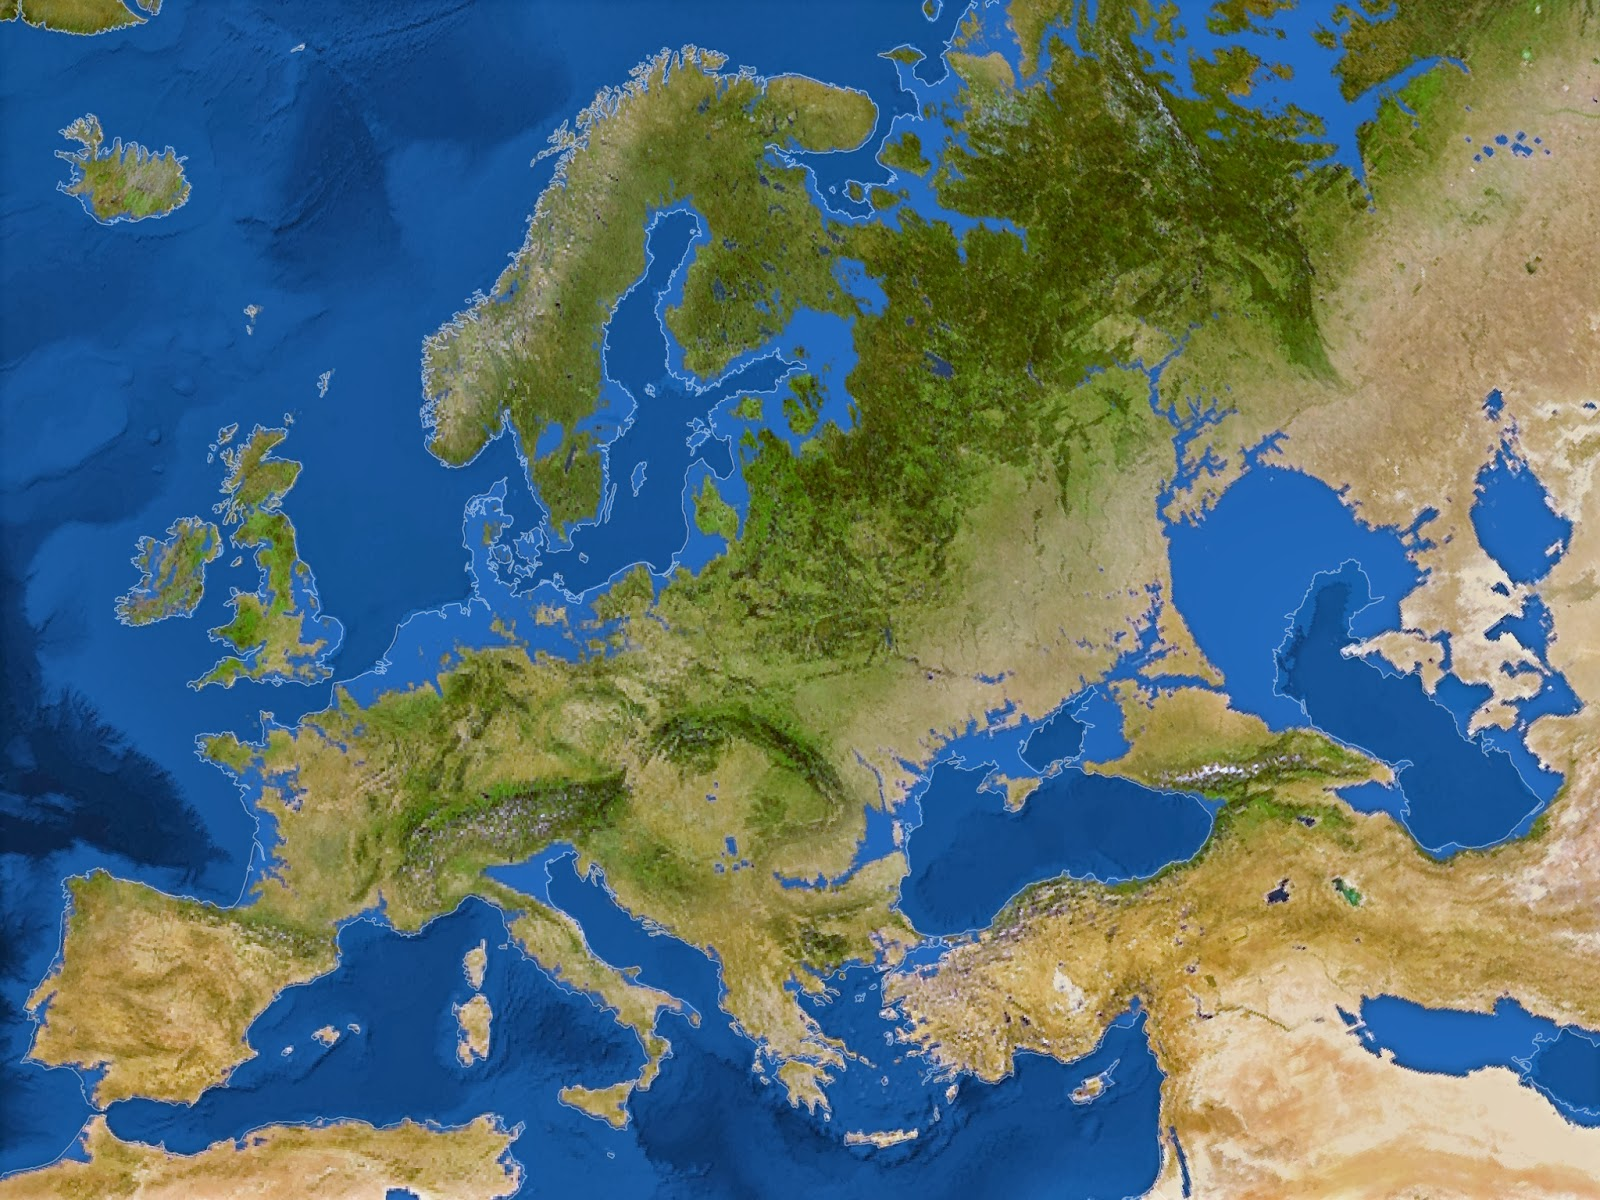 The anthroposea coastlines in an ice free world map of europe following a 216 foot sea level rise national geographic 2013 gumiabroncs